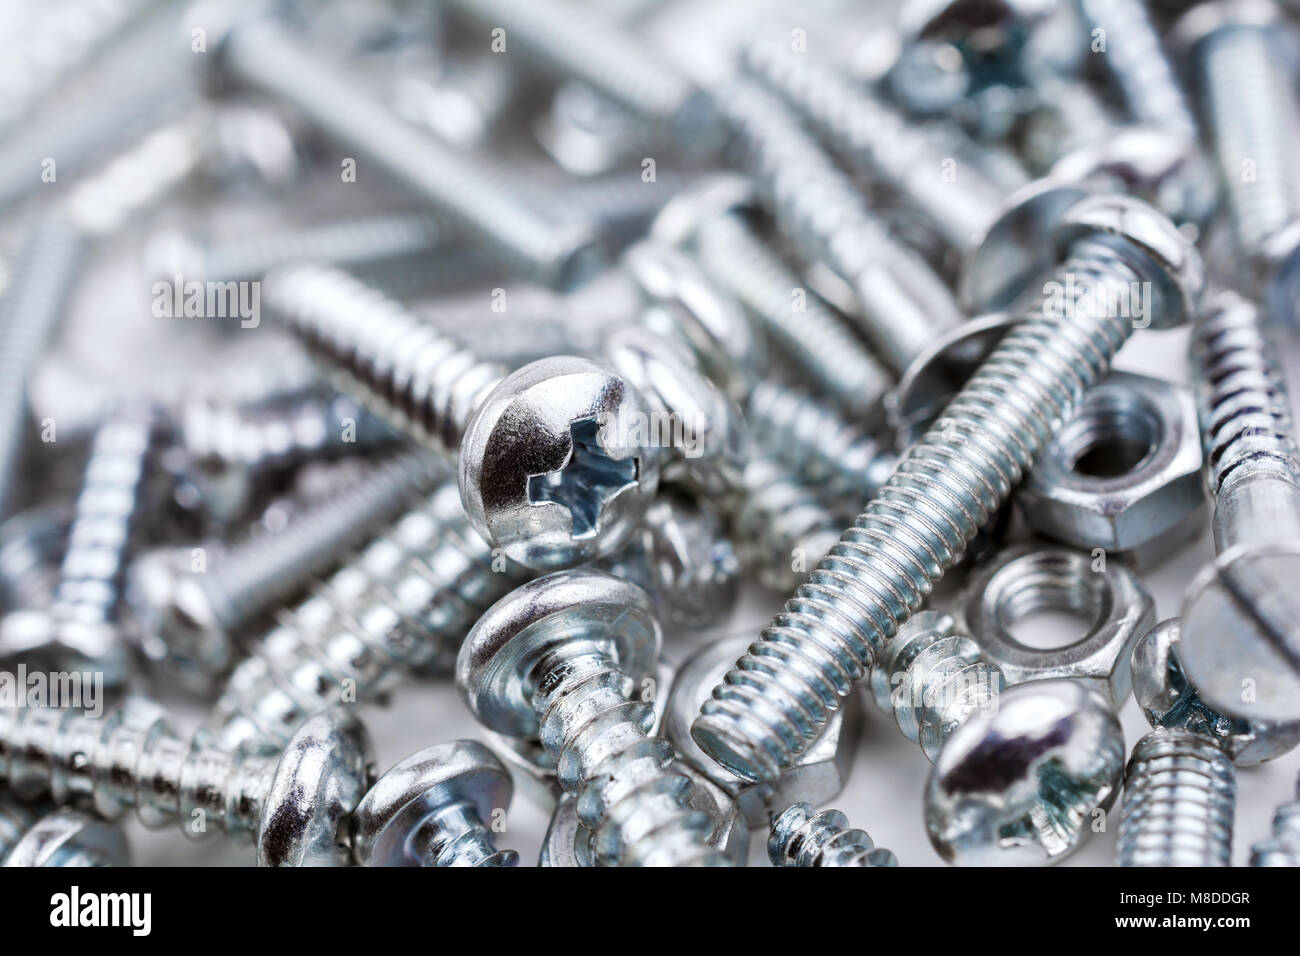 A Big Collection Of Various Iron Screws and Bolt Nuts #3 - Stock Image